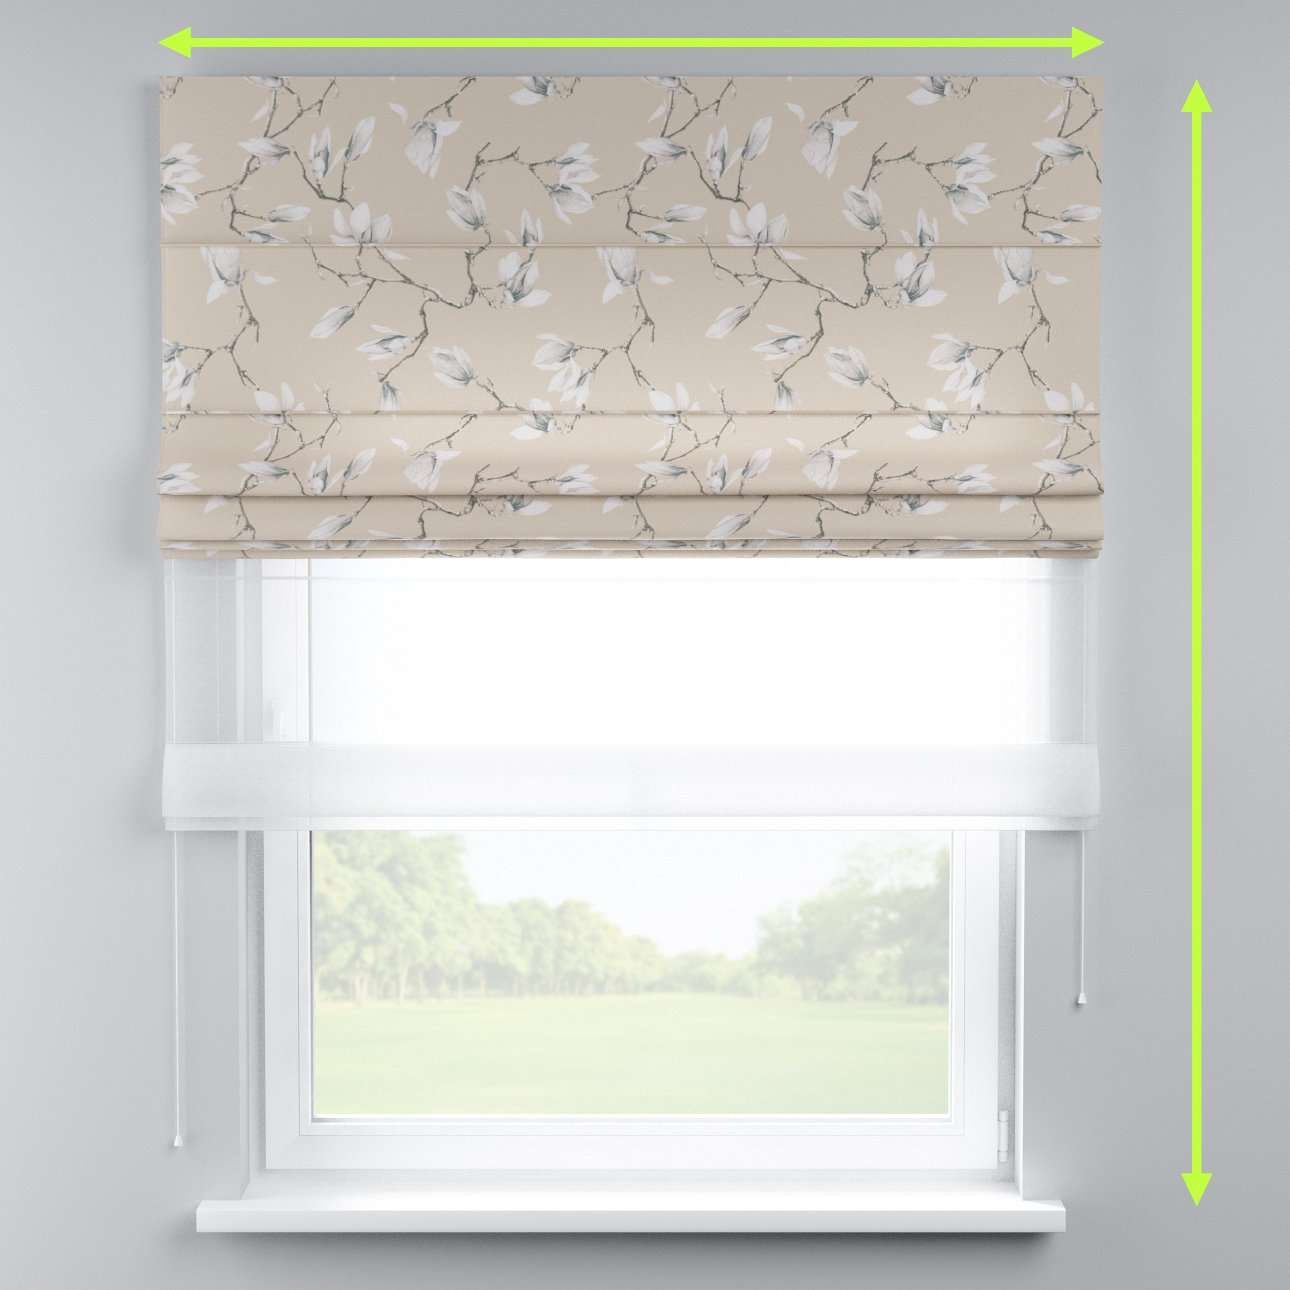 Voile and fabric roman blind (DUO II) in collection Flowers, fabric: 311-12